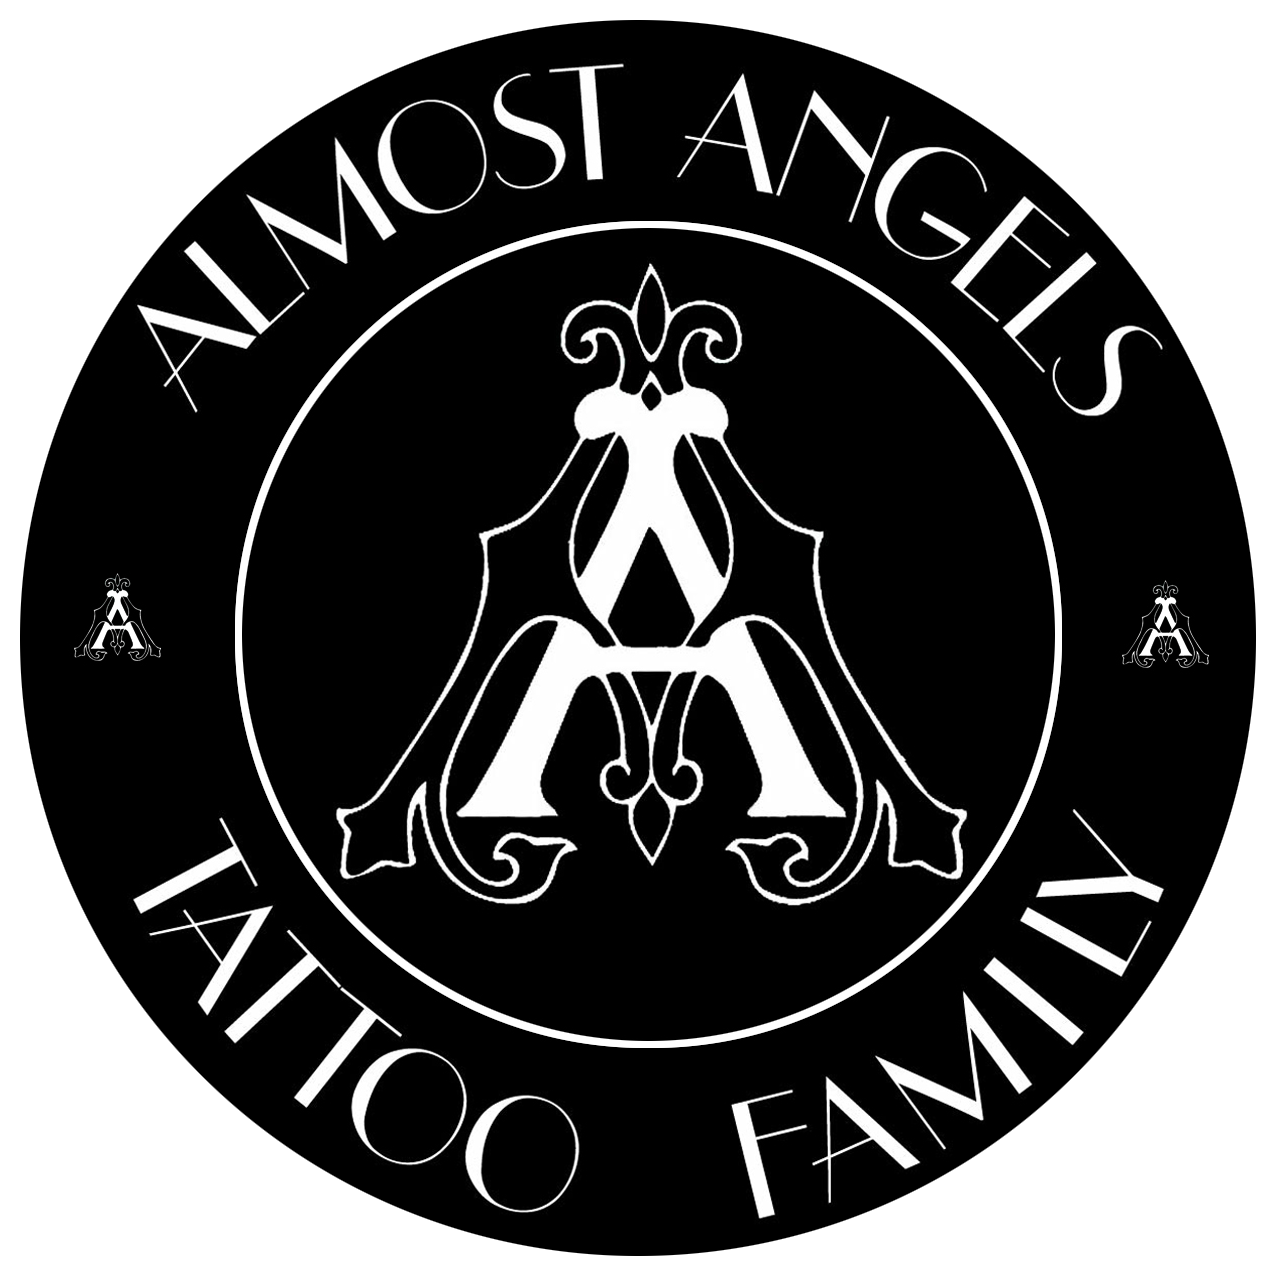 Almost Angels Tattoo Family